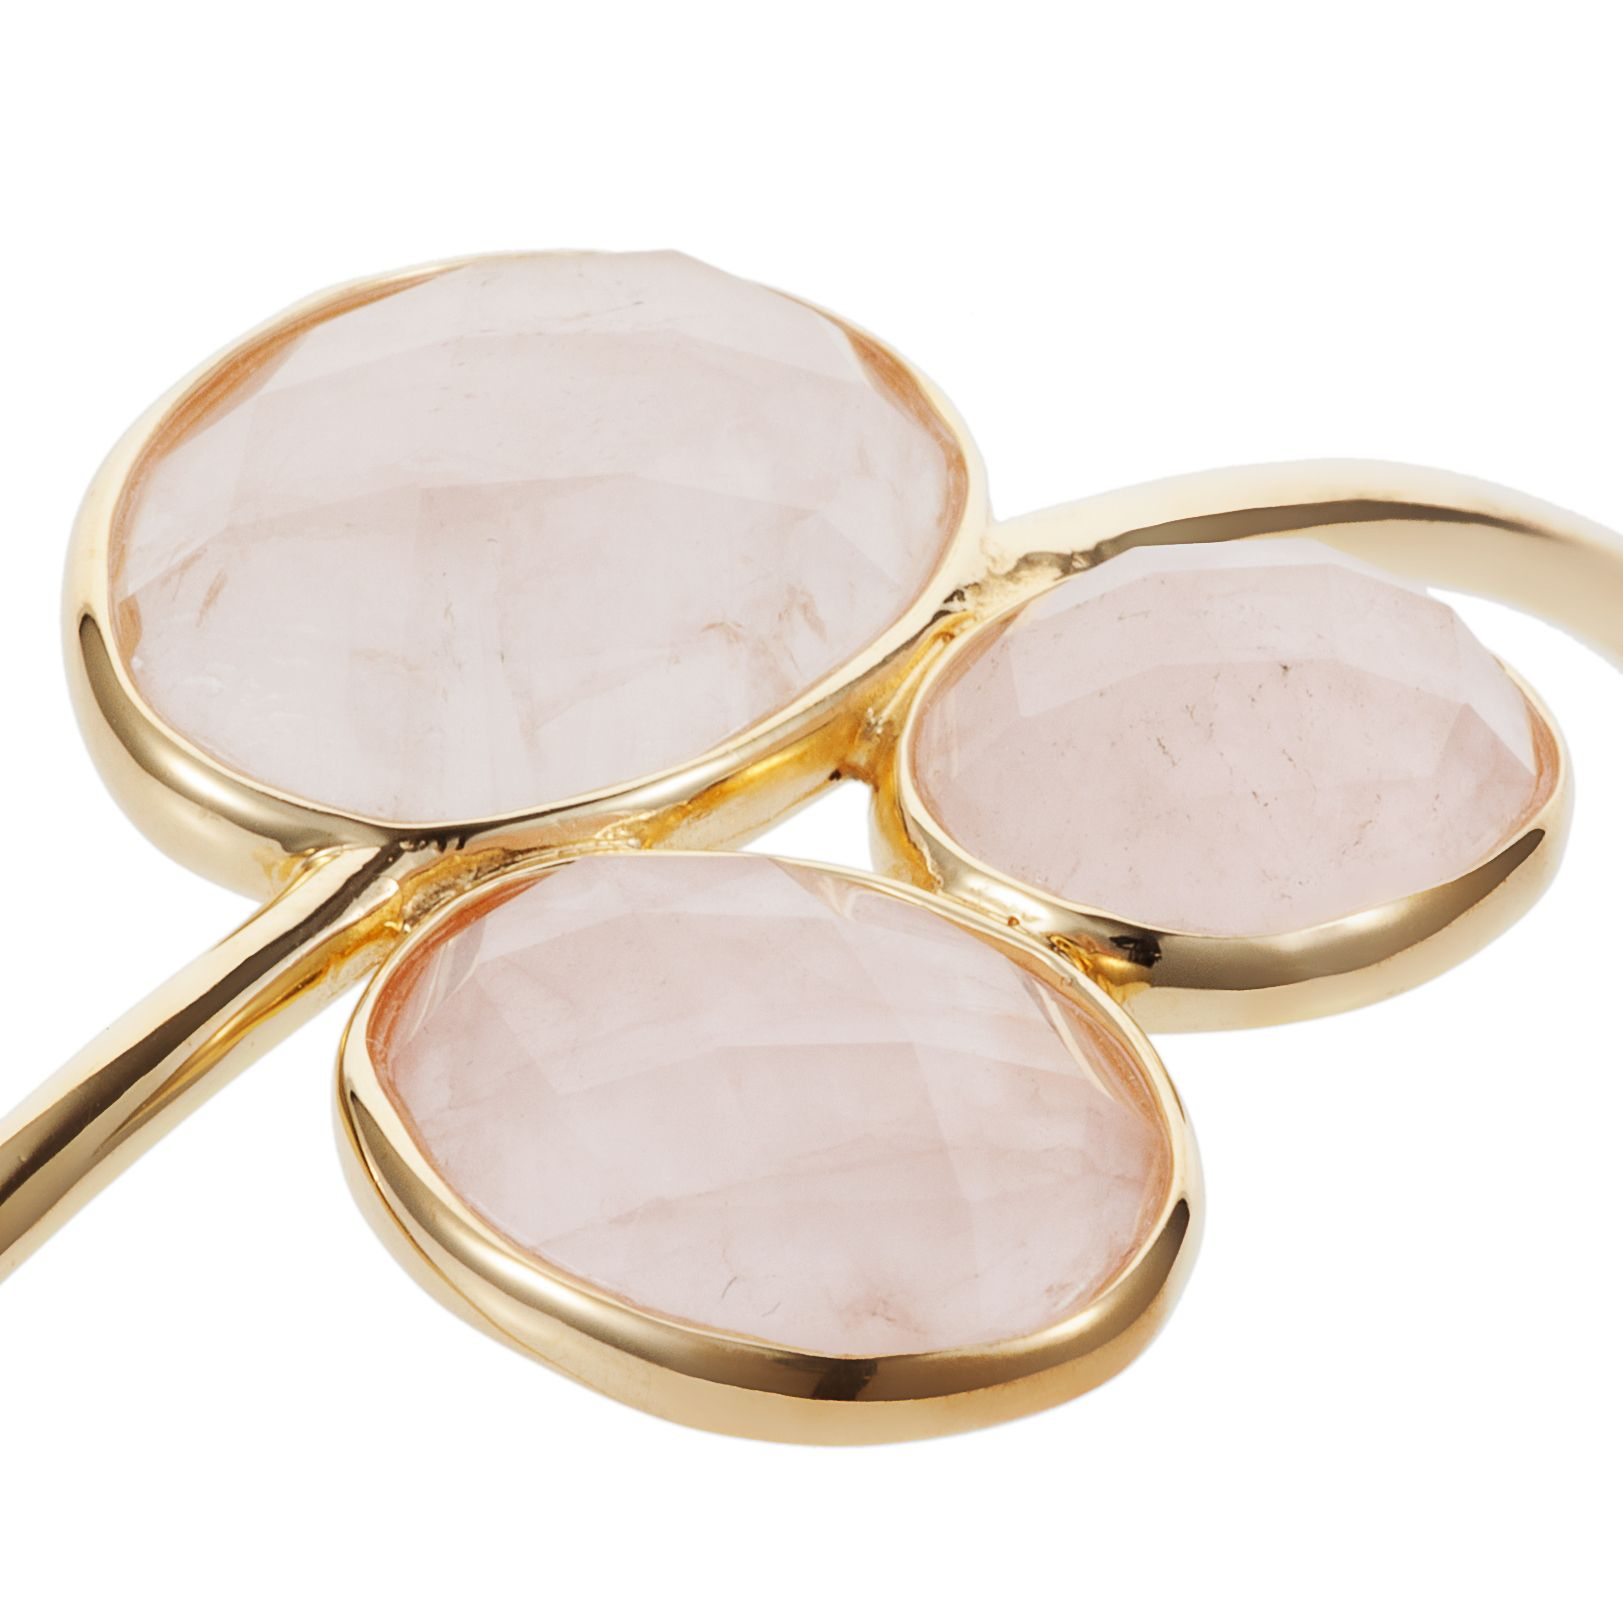 18ct gold plated sterling silver 16ct rose quartz